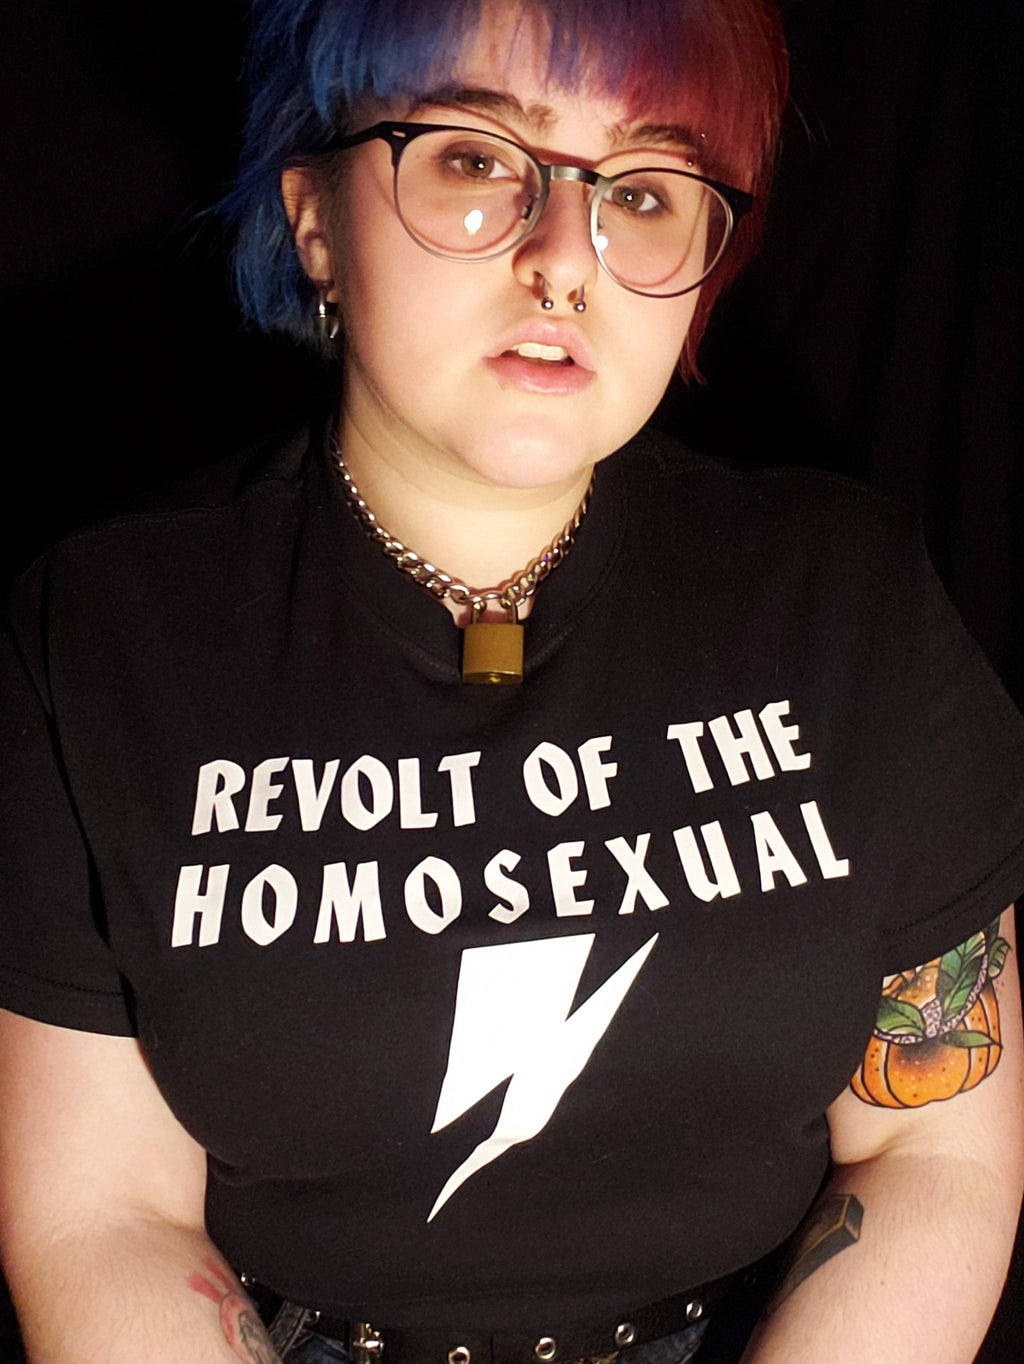 Revolt of the Homosexual tee